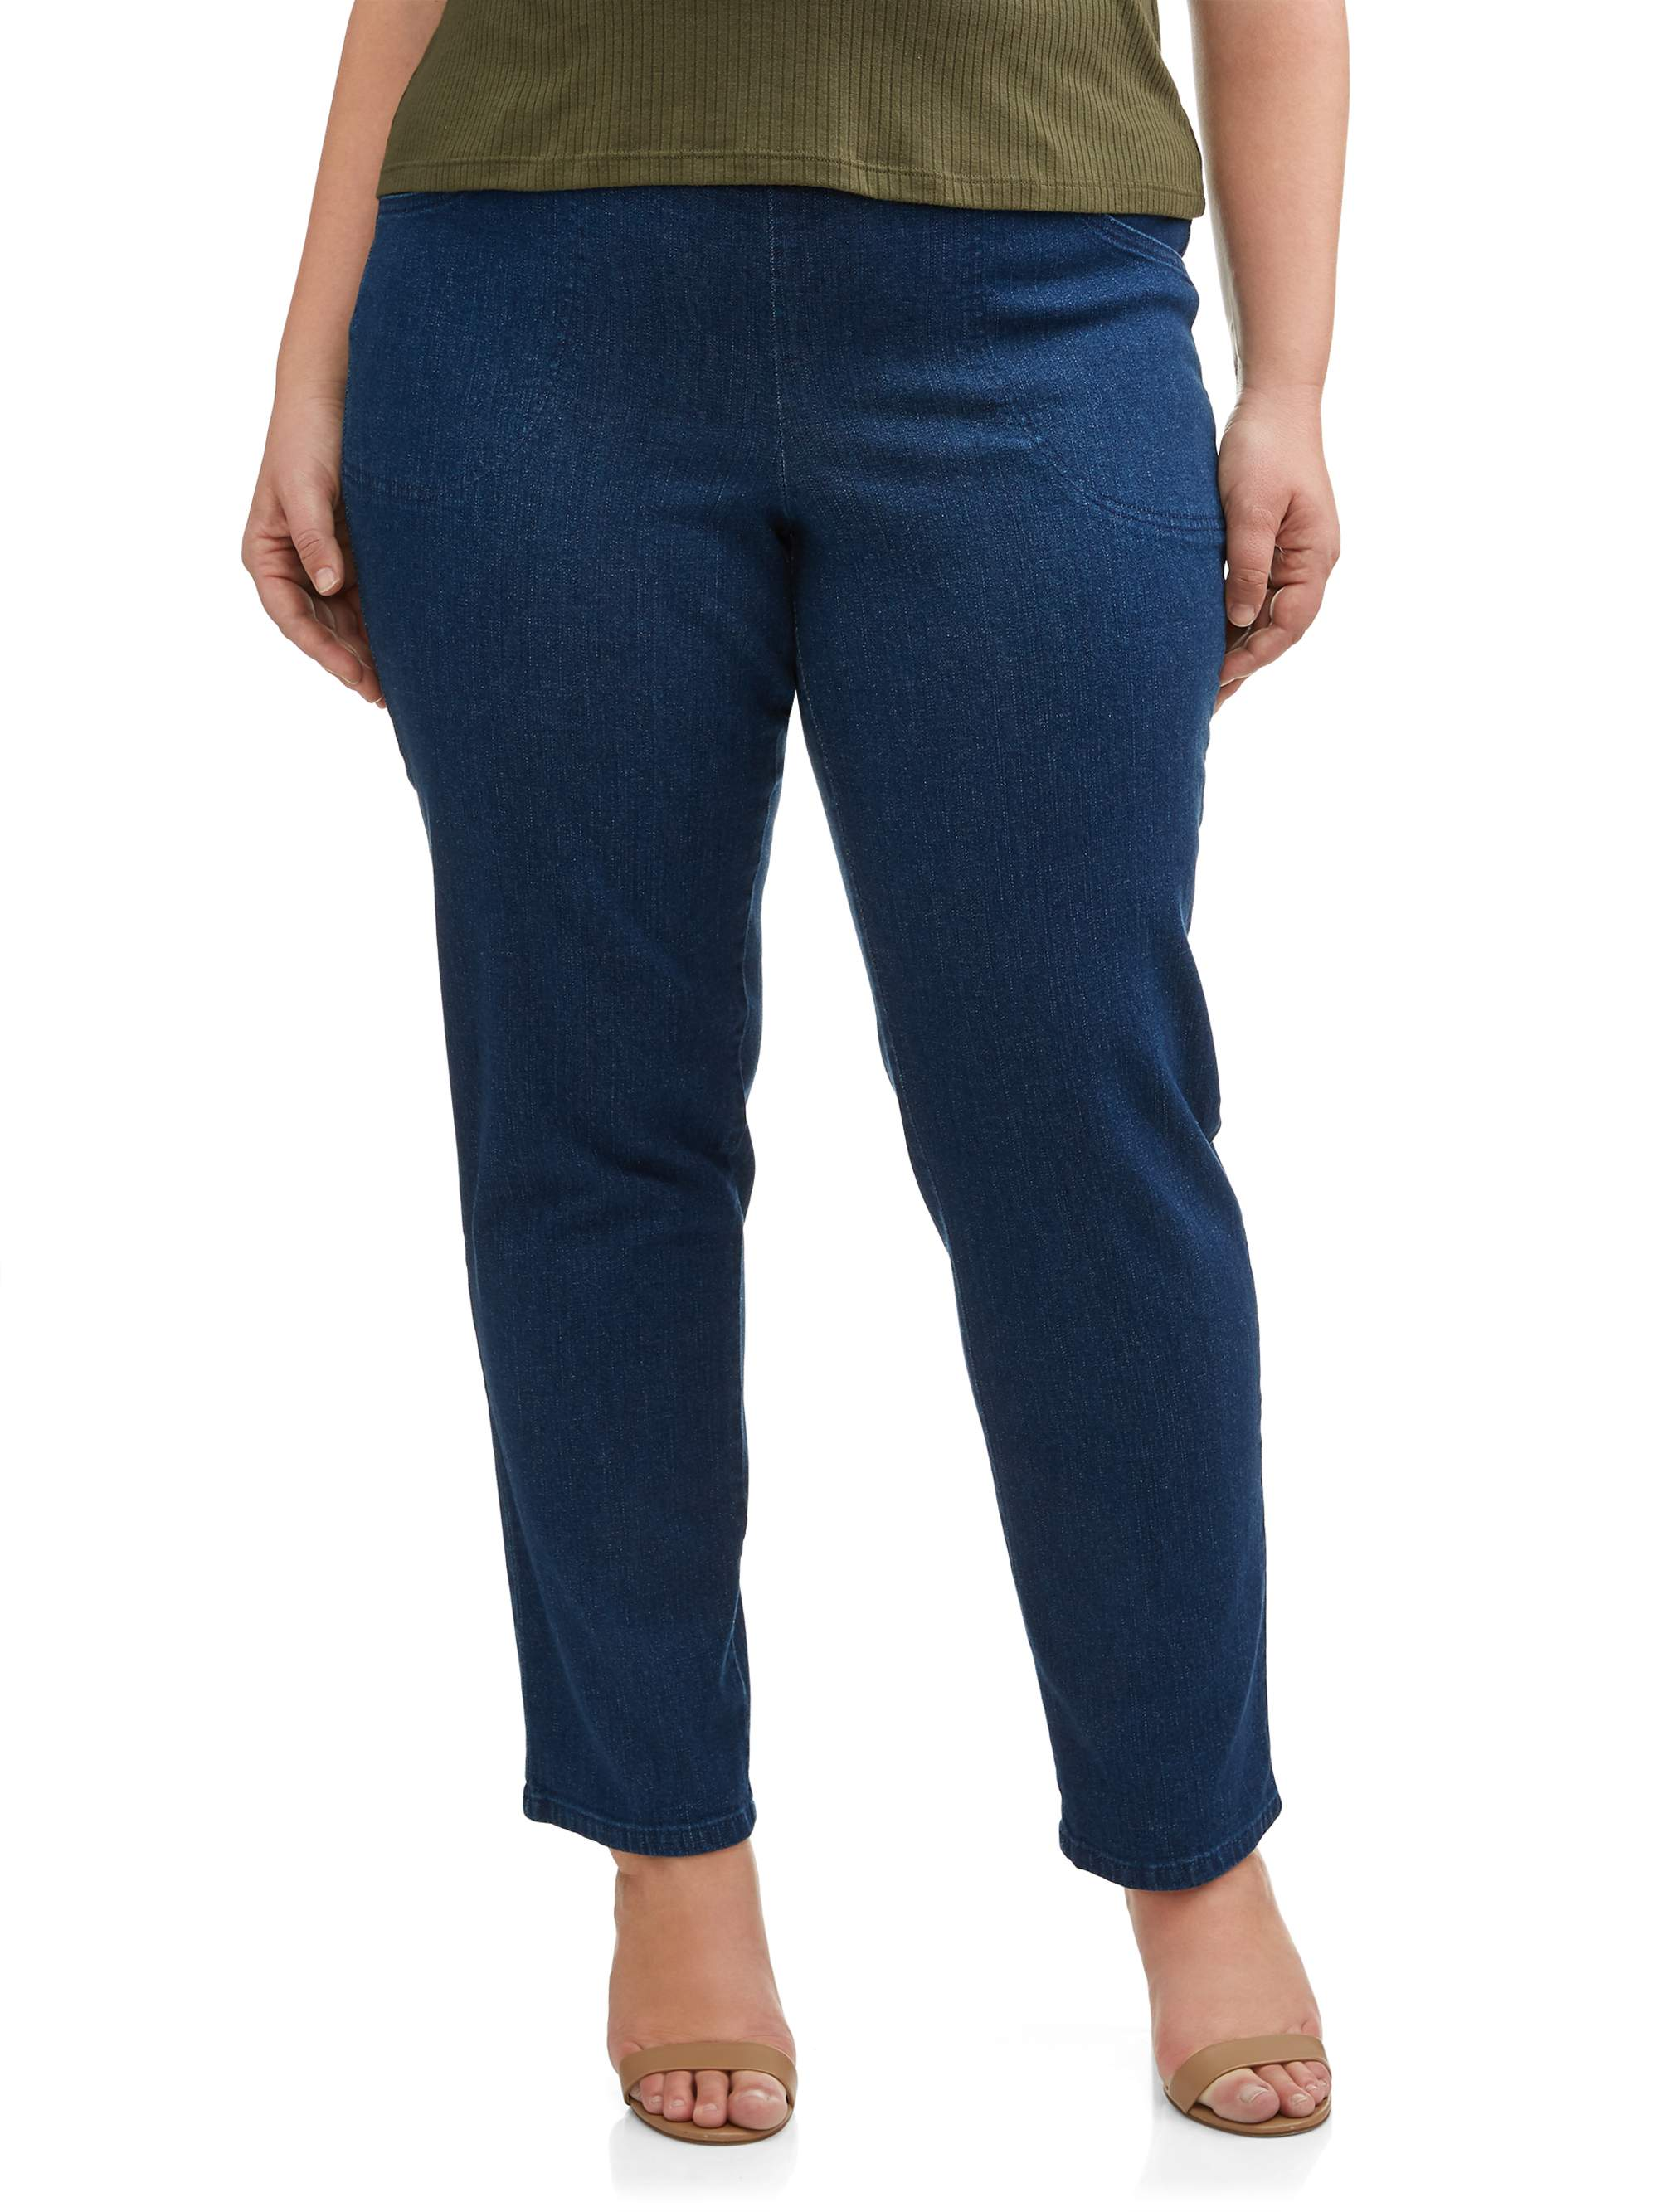 78f21d5887a Just My Size - Women s Plus-Size 2-Pocket Pull-On Stretch Woven Pants